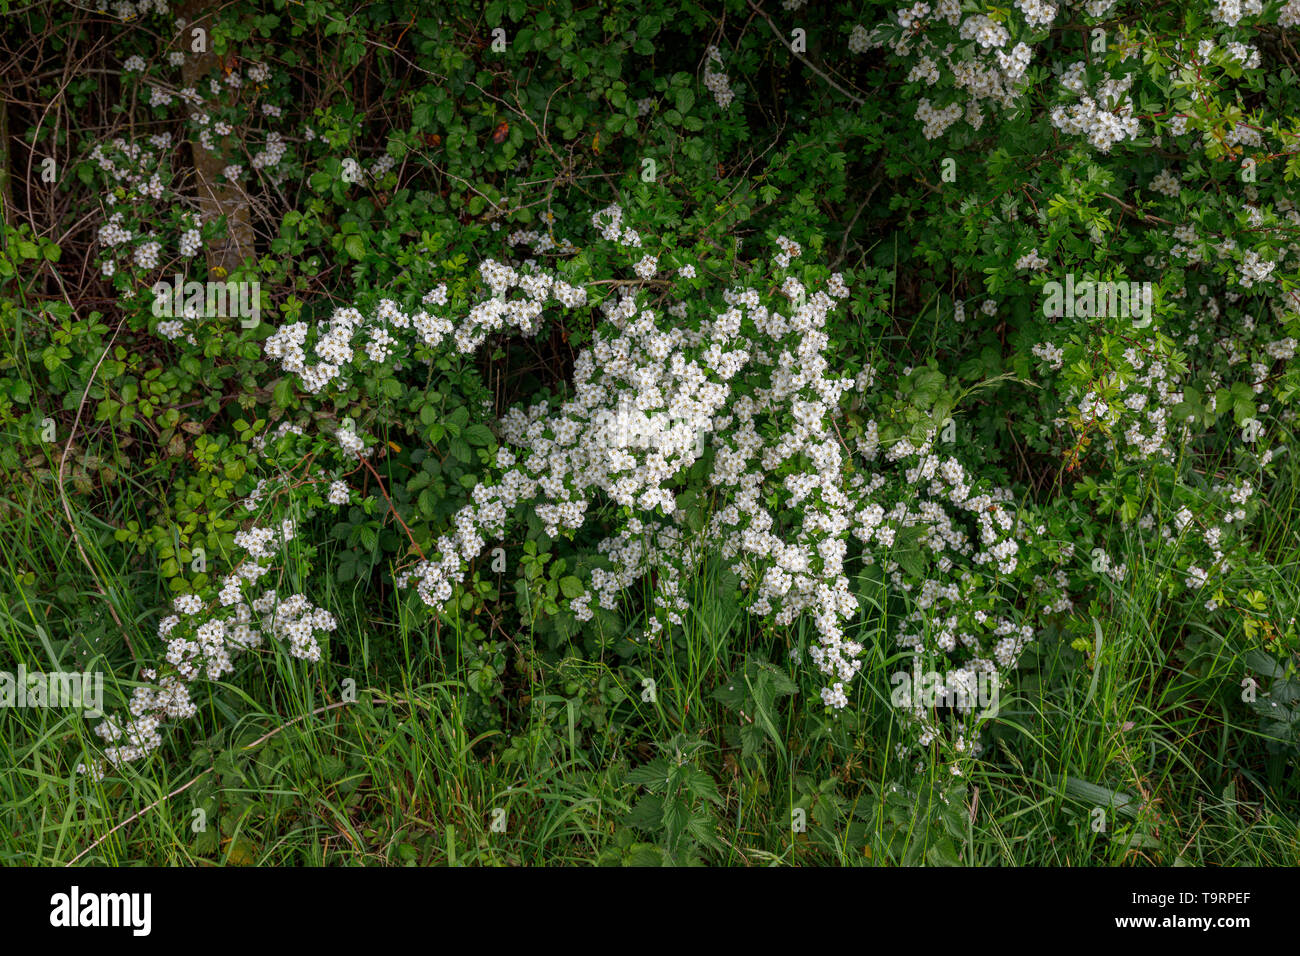 Hawthorn (crataegus) flowering in late spring / early summer in Test Valley, Southampton, Hampshire, southern England, UK - Stock Image